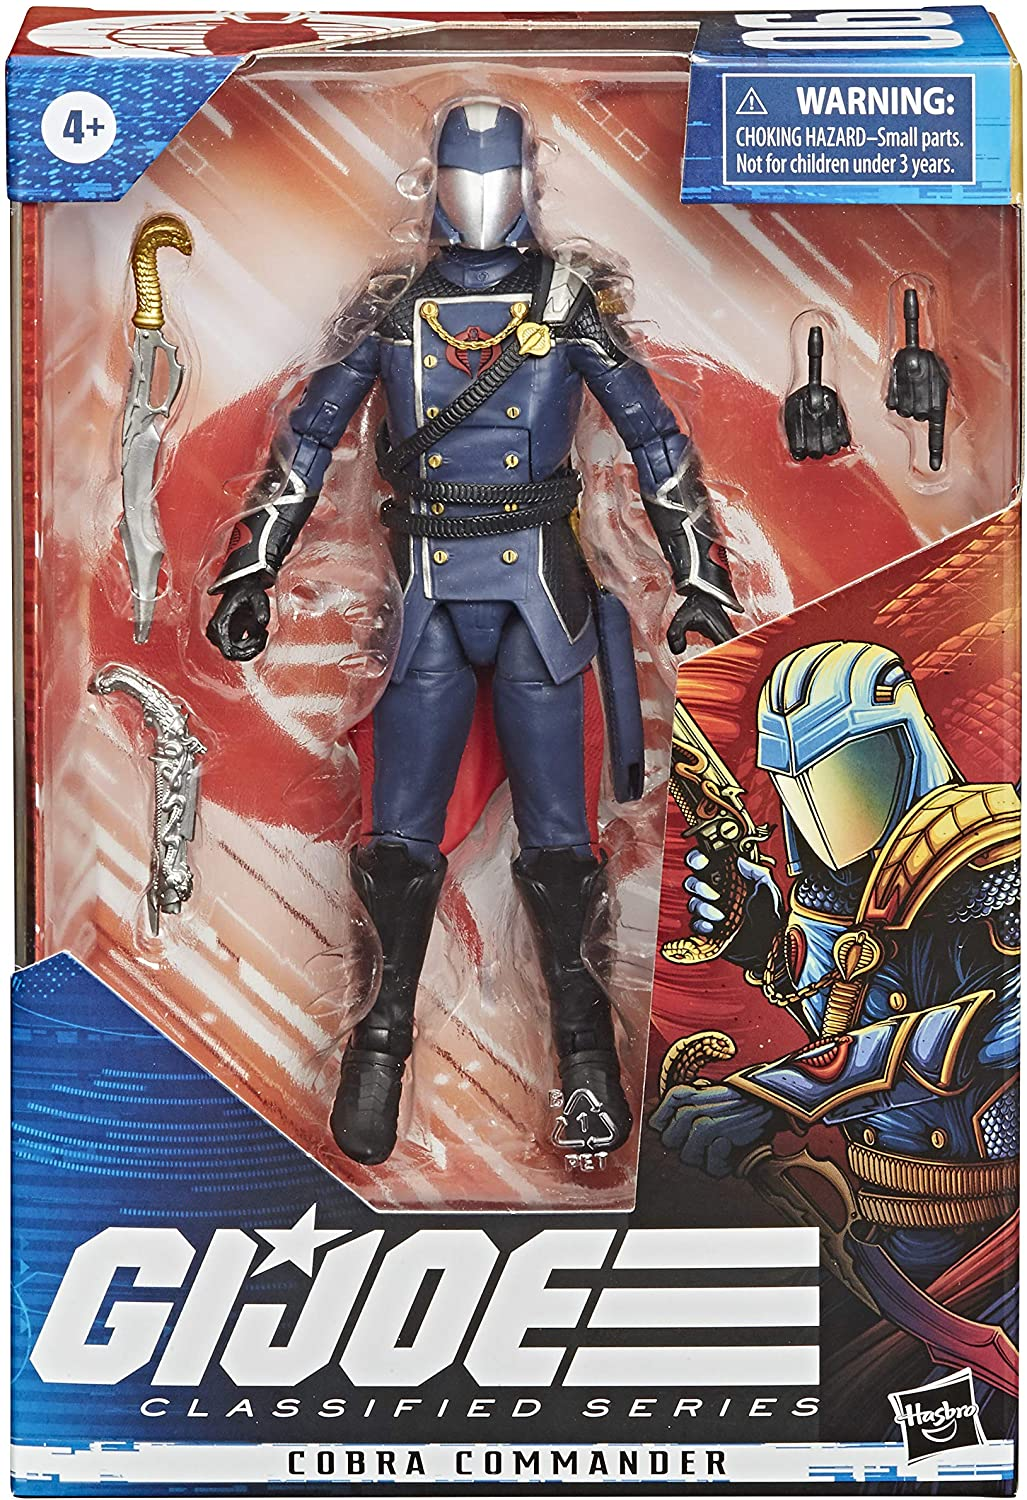 G.I. Joe: Classified Series - Cobra Commander Regal Variant